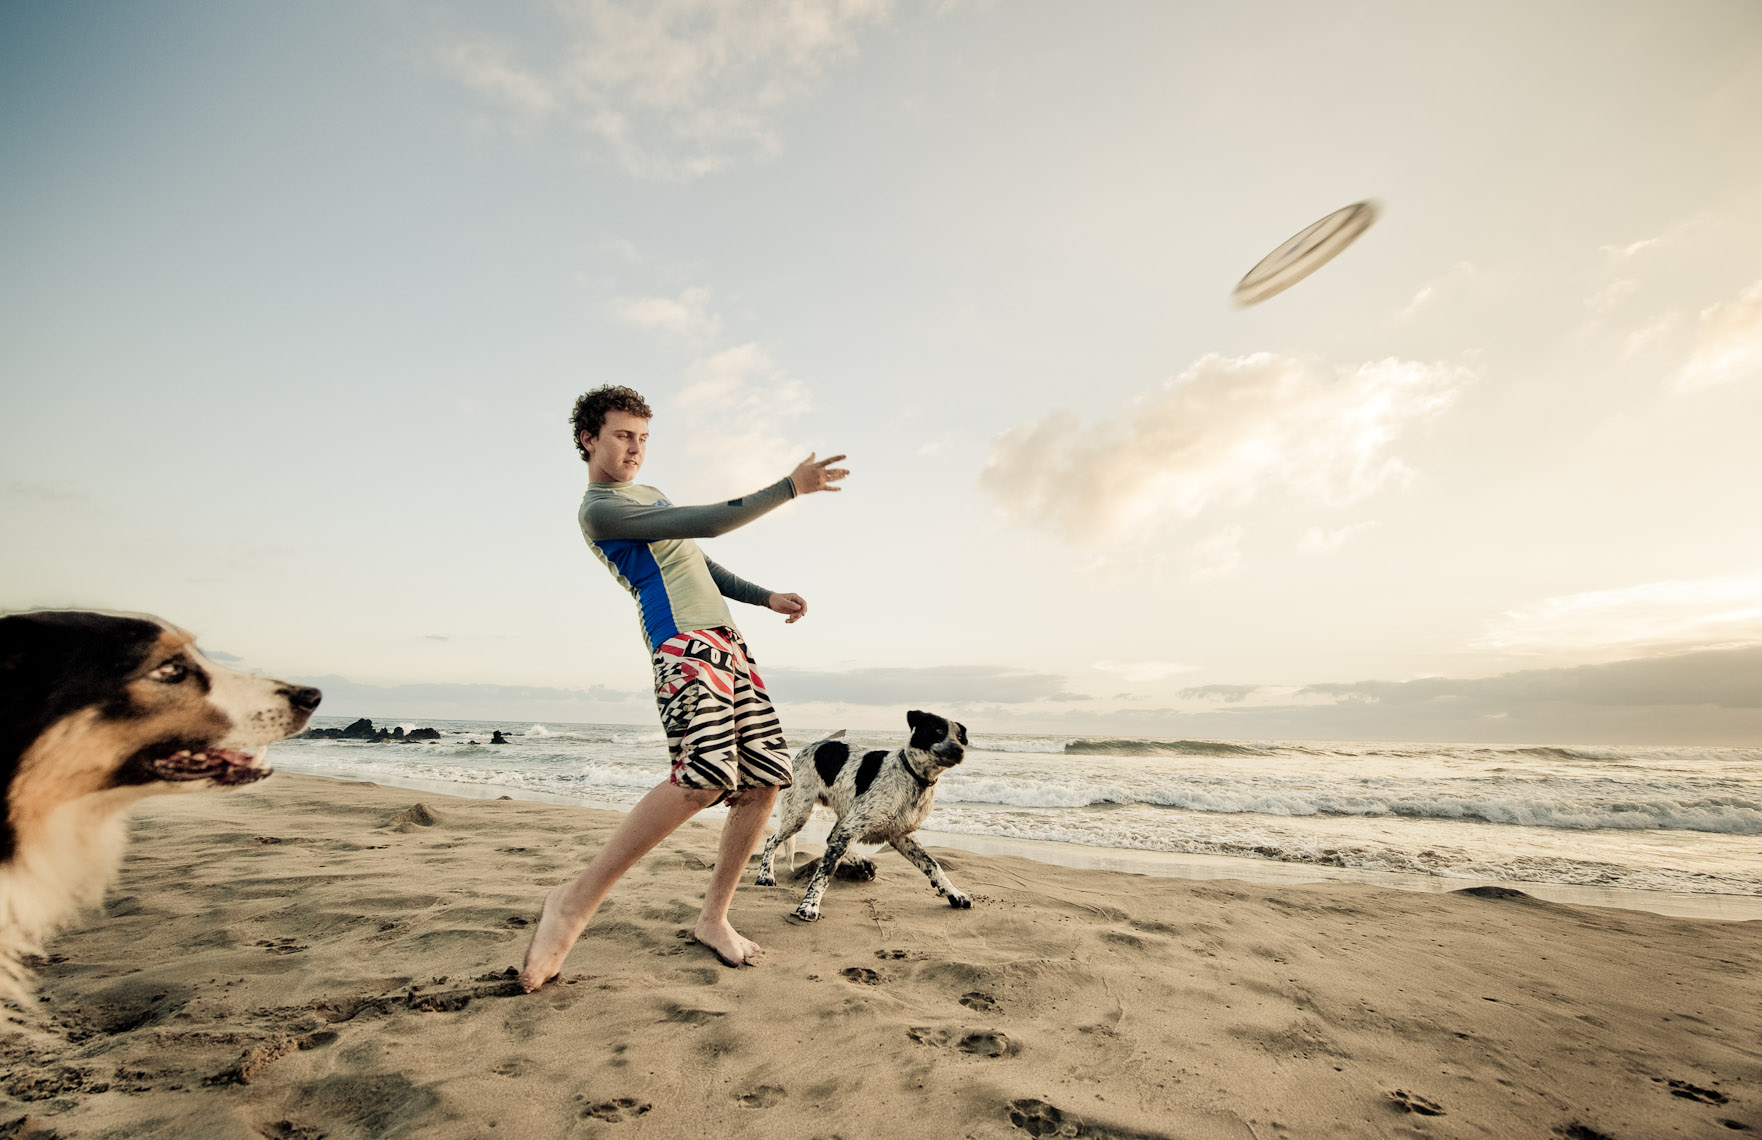 Kevin Steele - A boy throwing a frisbee on a beach with dogs